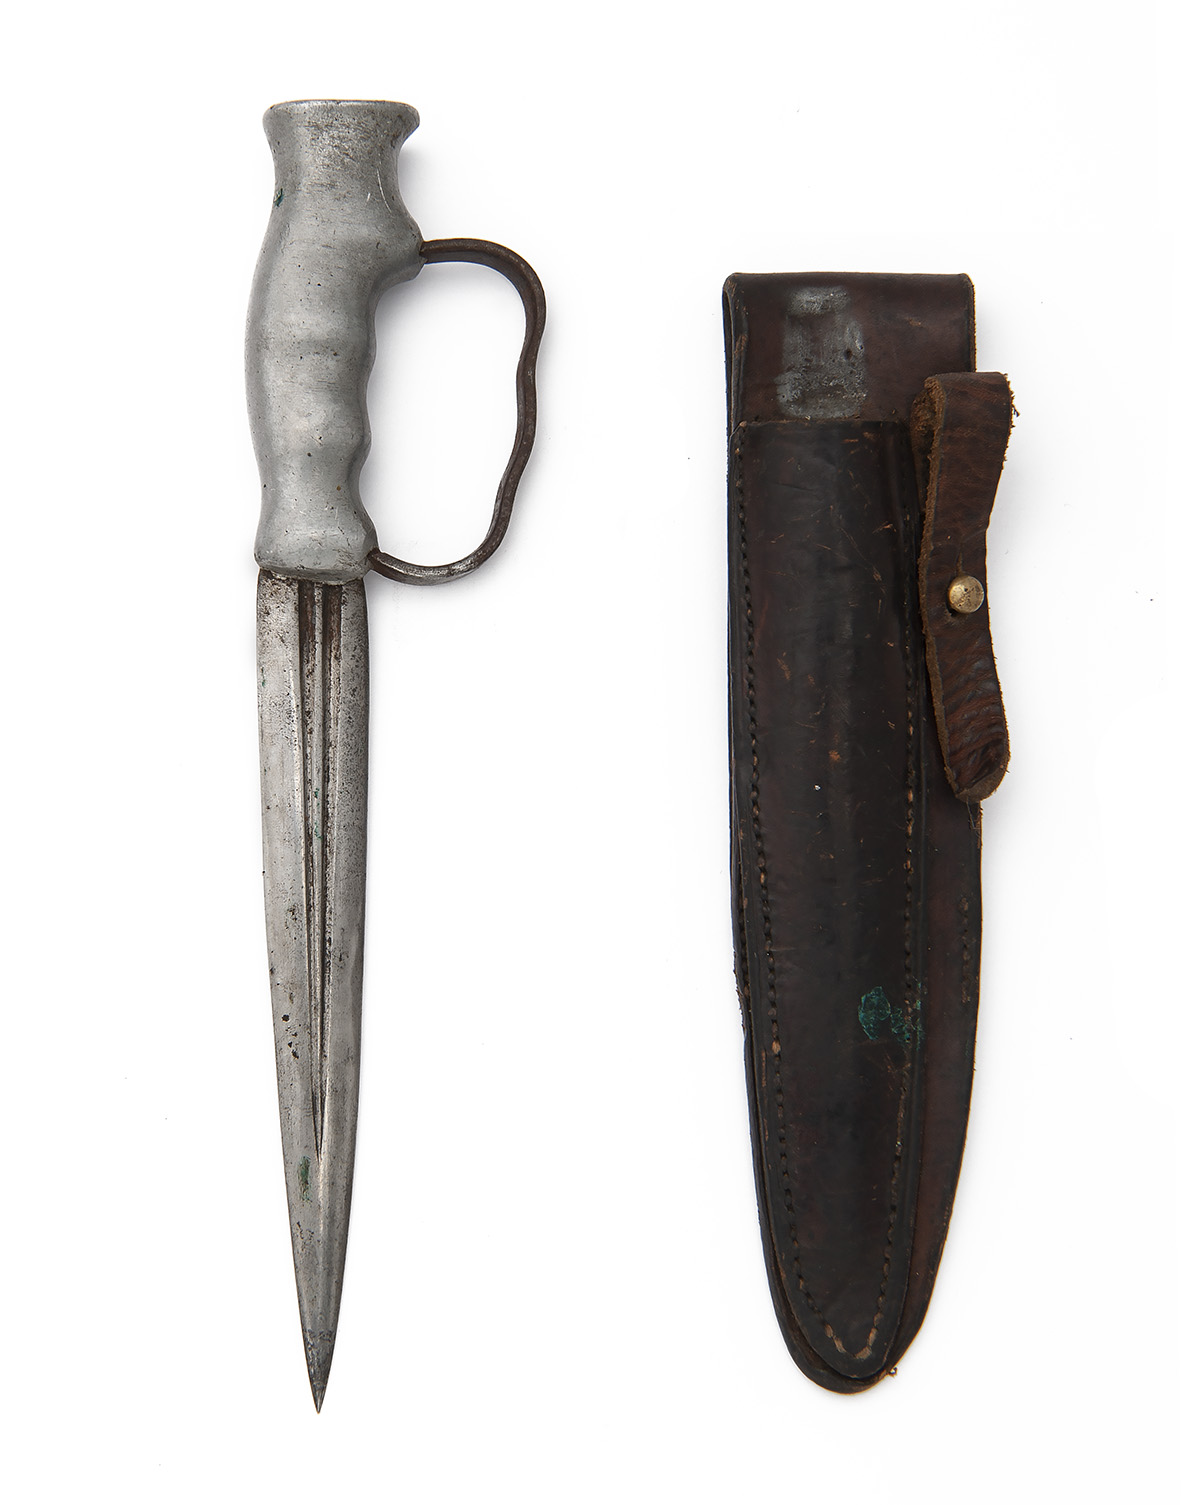 Lot 224 - ROBBINS, DUDLEY A RARE BRITISH WORLD WAR ONE TRENCH-KNIFE, of 'in-line' form, with double-edged 6in.